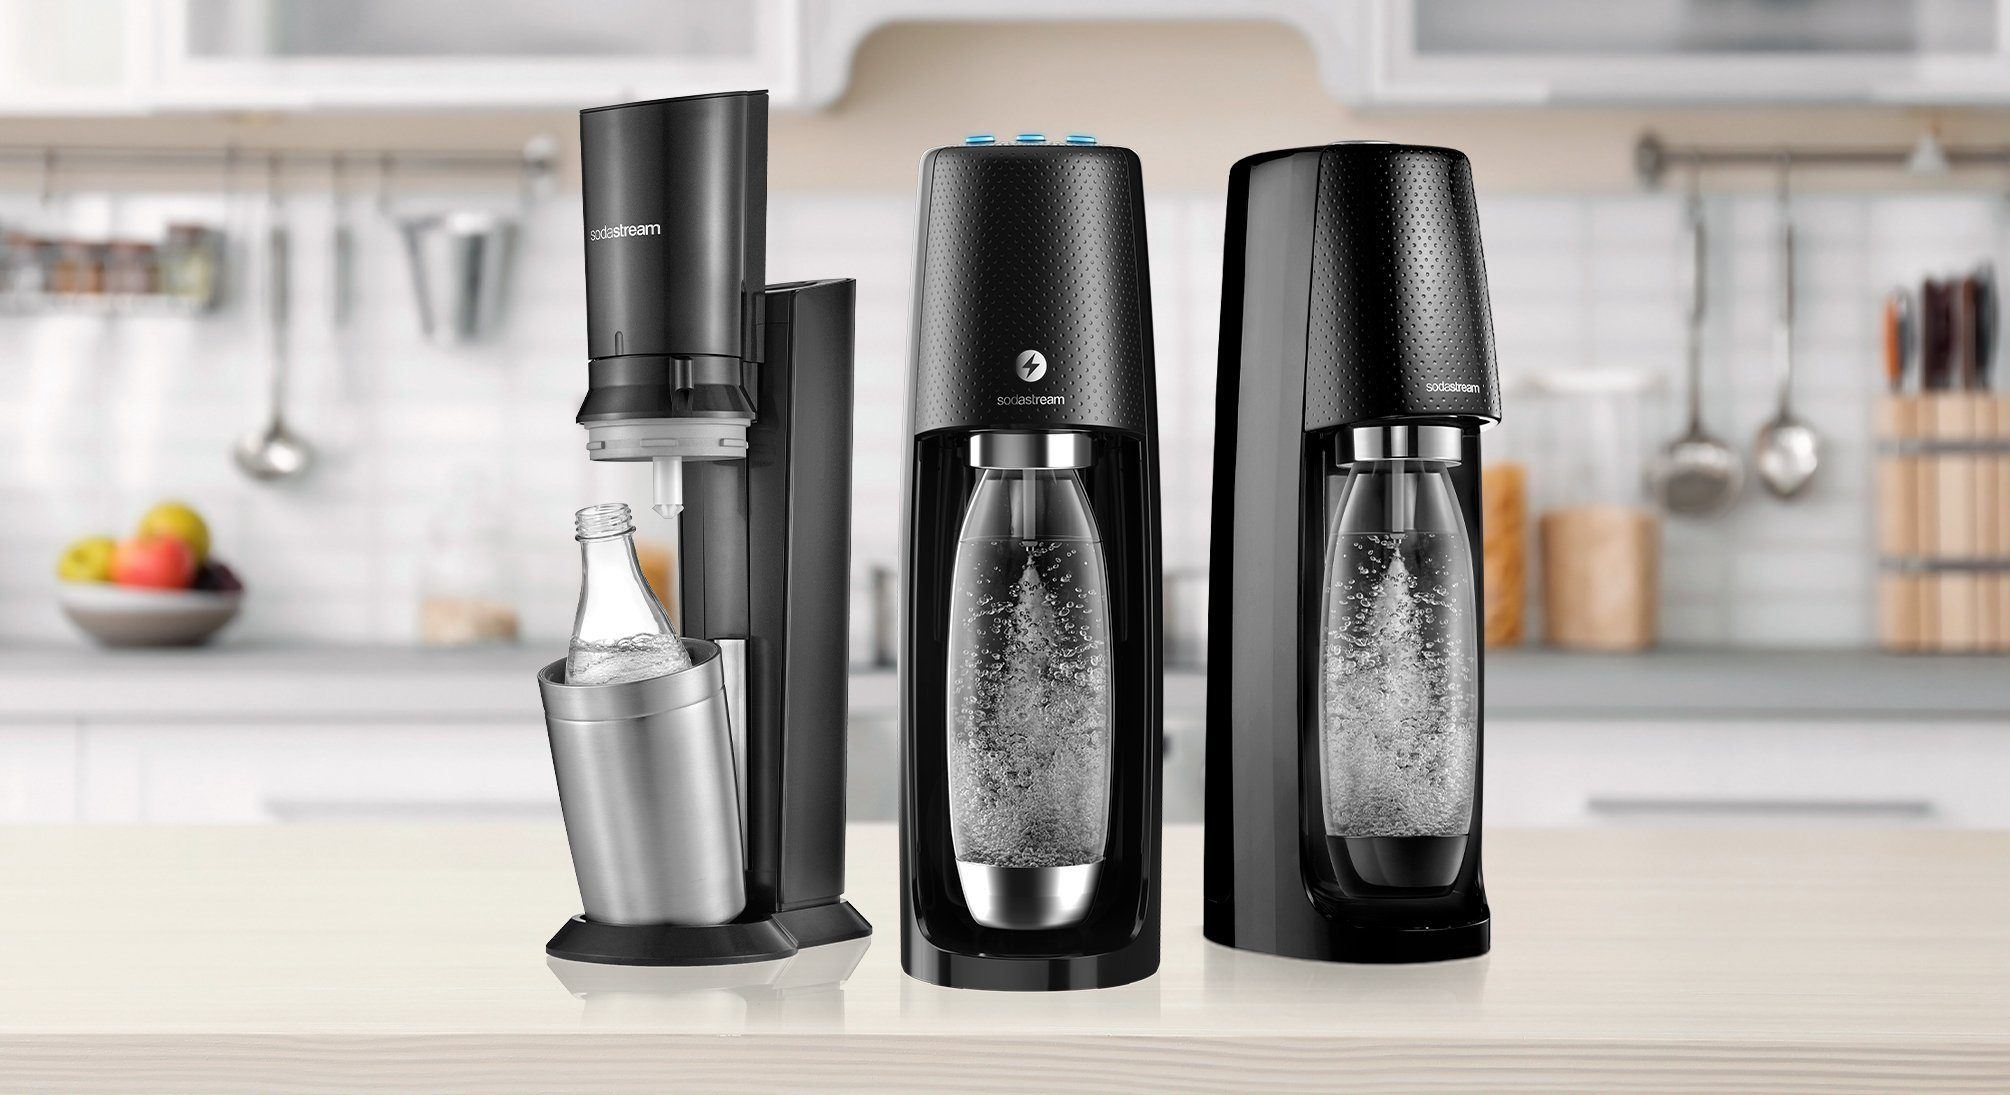 compare sodastream sparkling water maker models